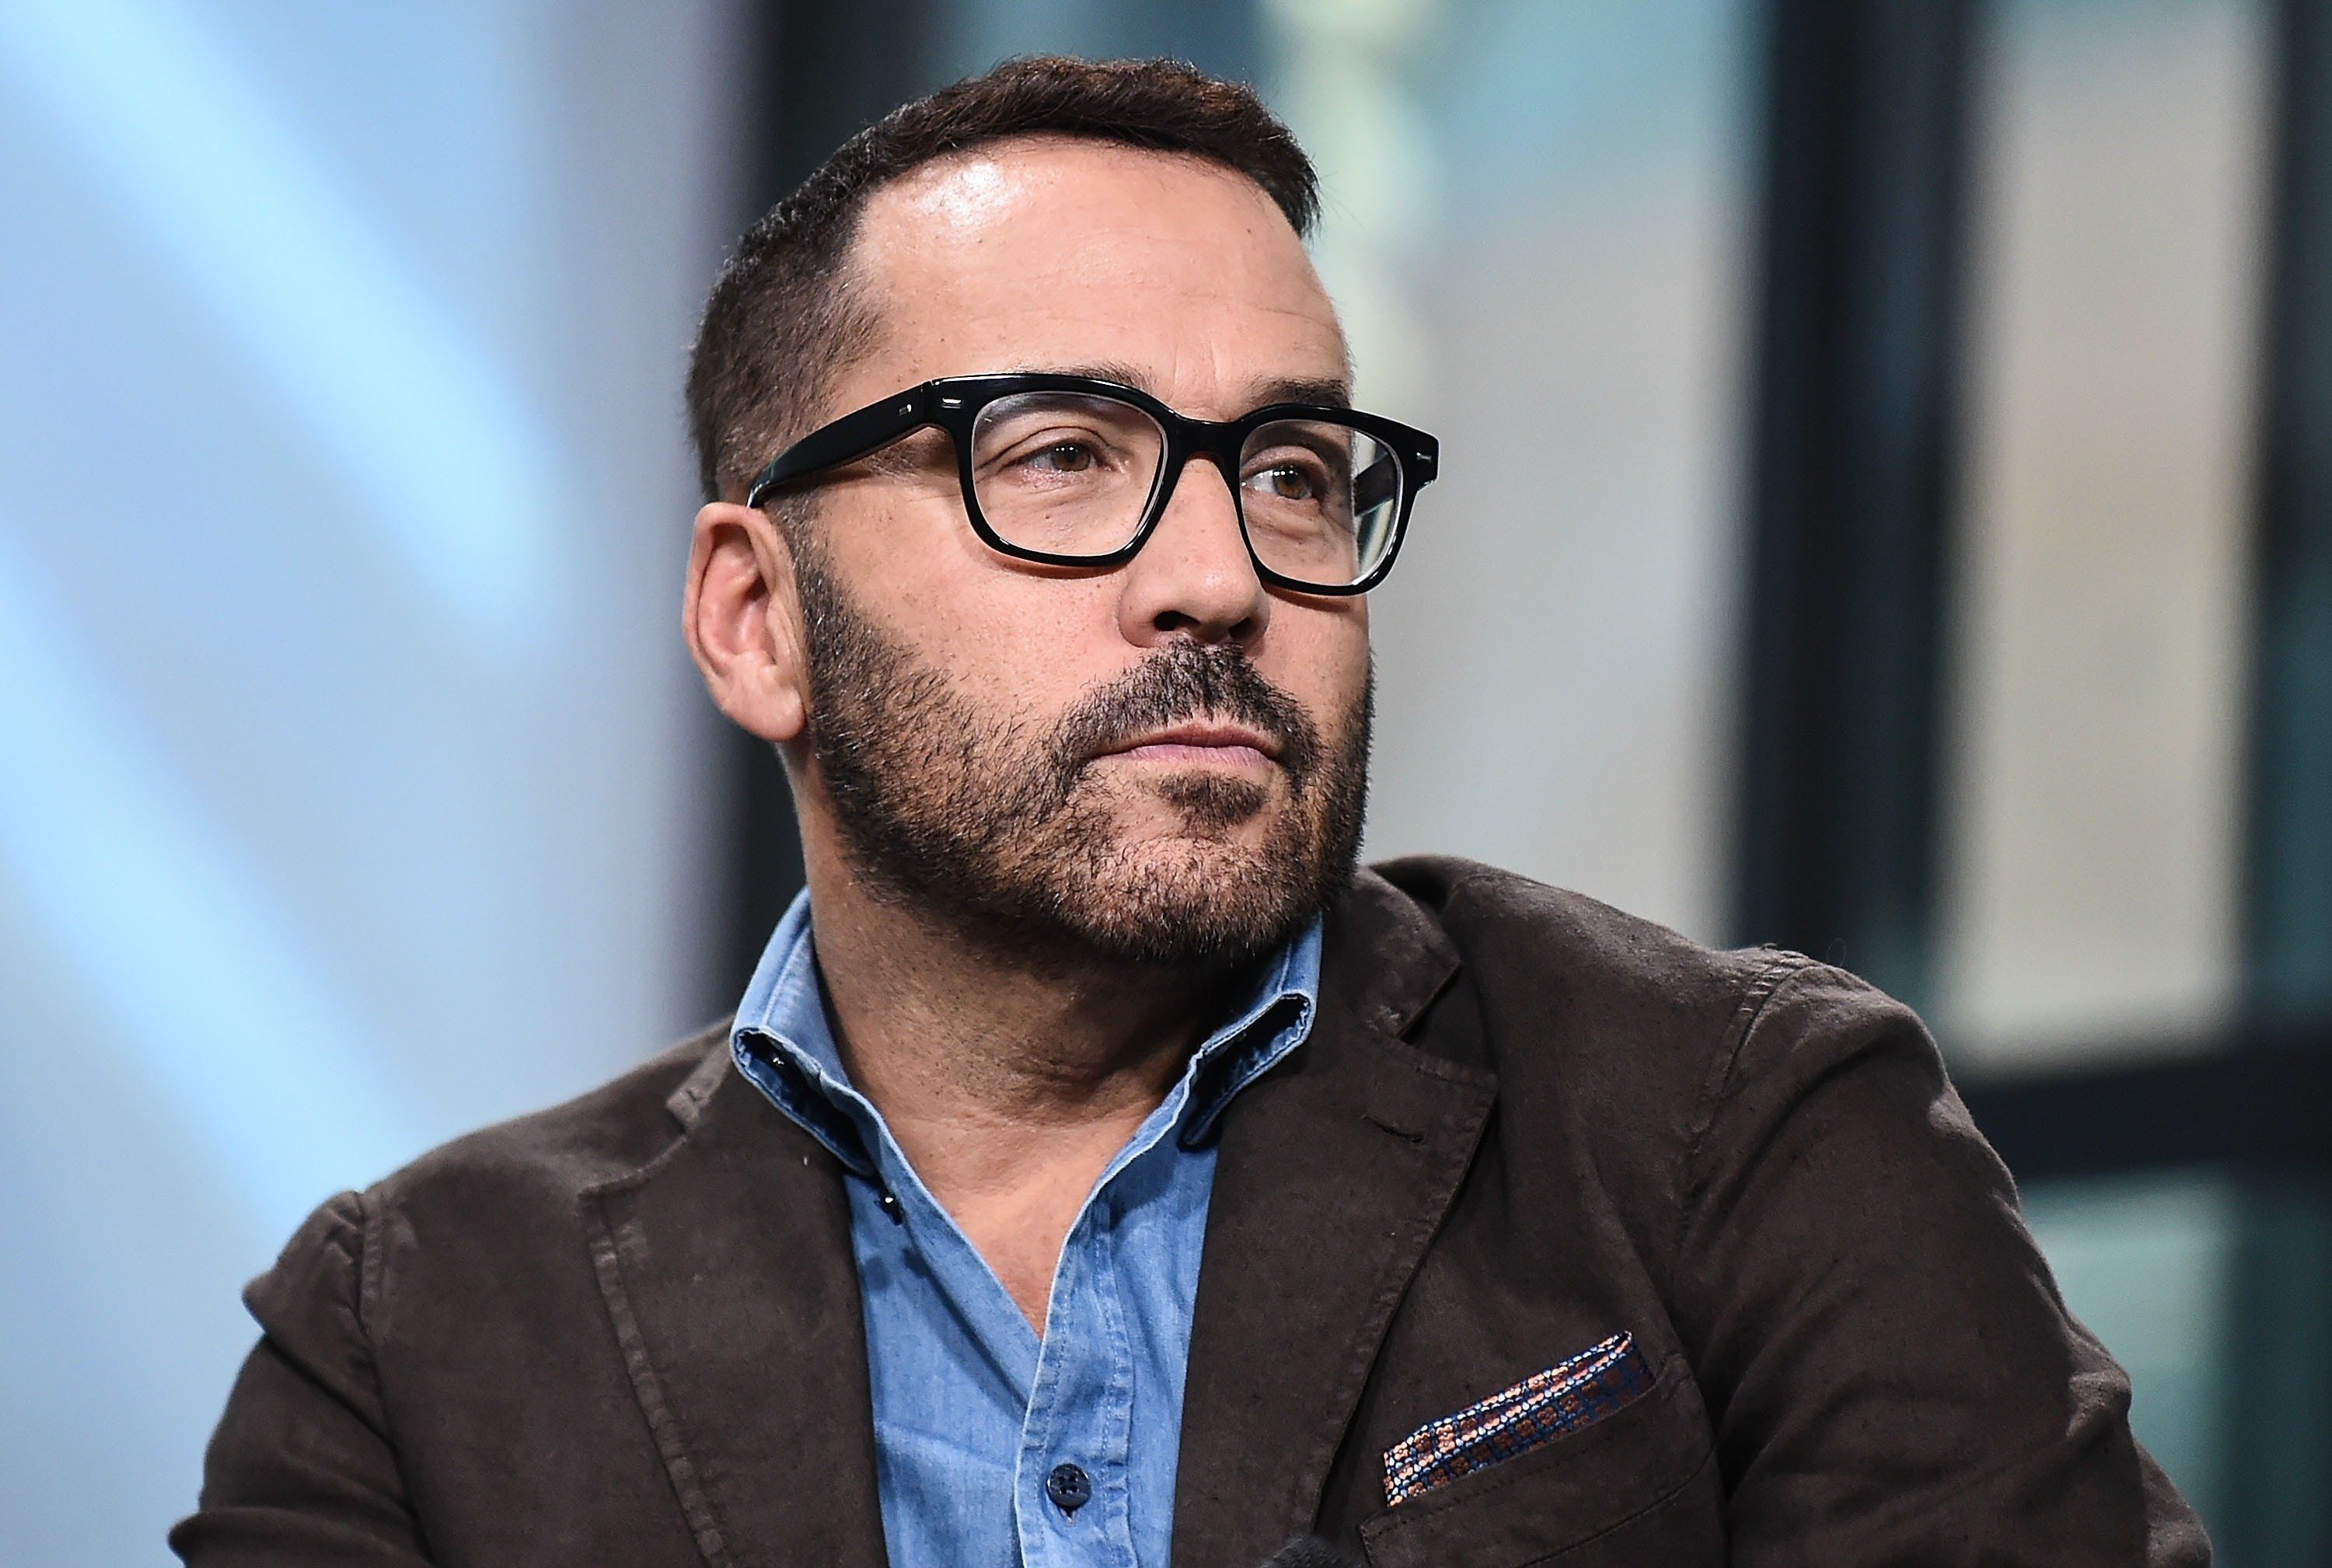 Jeremy Piven Accused Of Sexual Assault On The Entourage Set